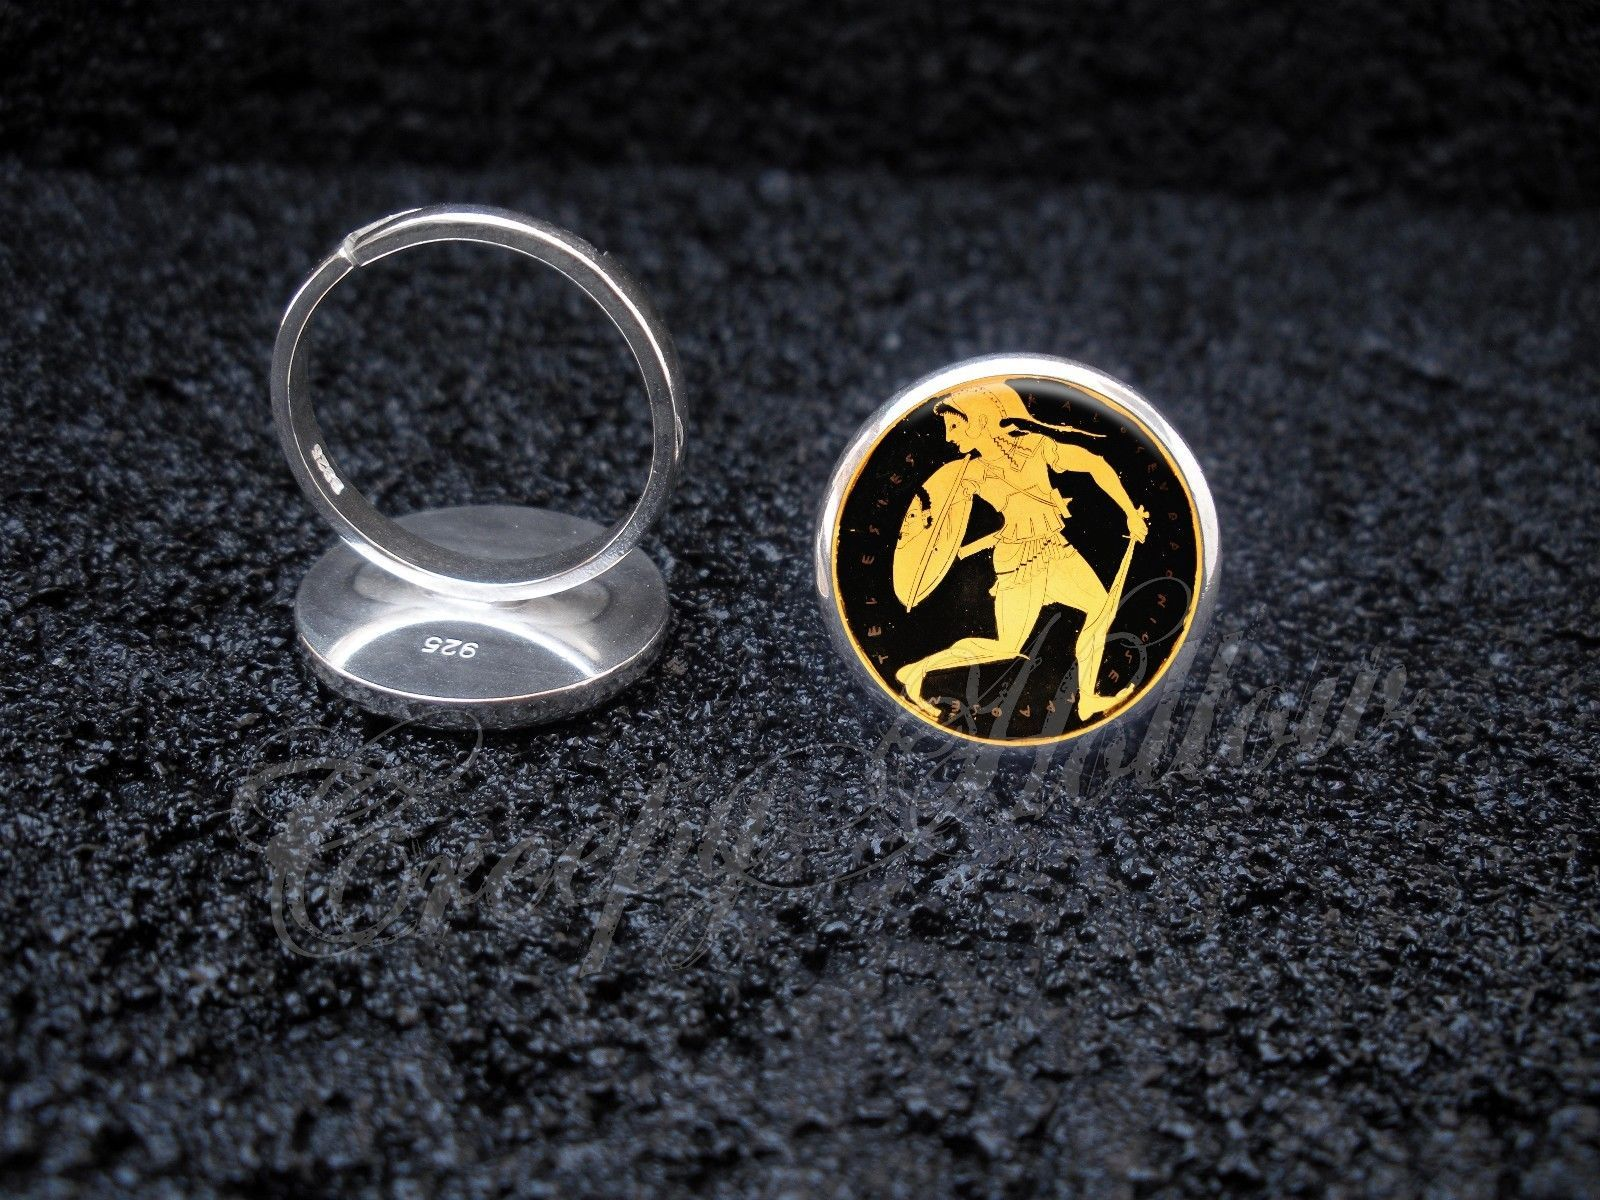 Primary image for 925 Sterling Silver Adjustable Ring Ancient Greek Amazon Warrior Woman